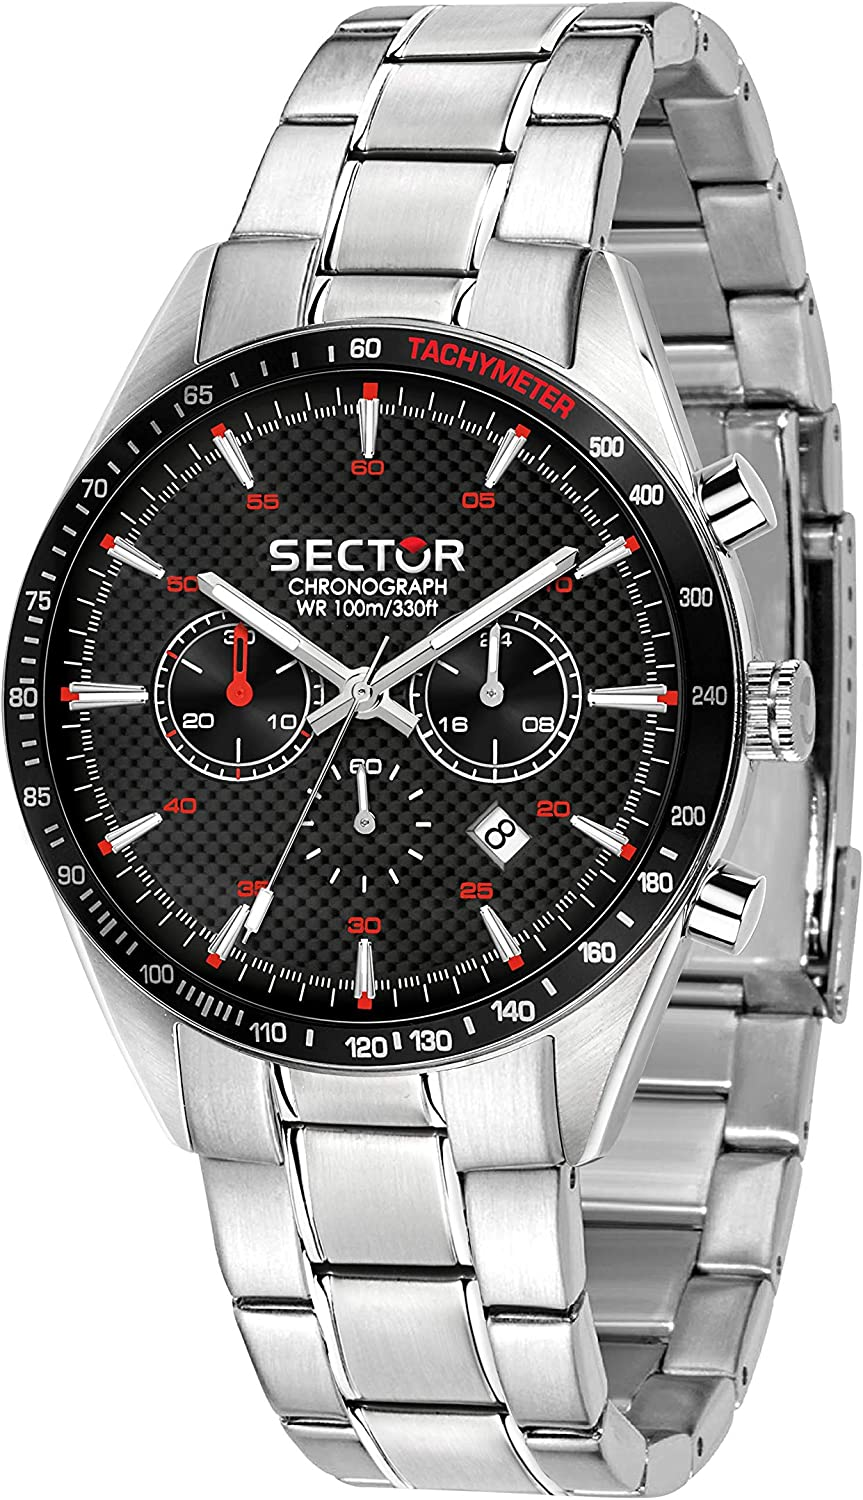 Sector No Limits Men s 770 Quartz Sport Watch with Stainless-Steel Strap, Silver, 22 Model R3273616004